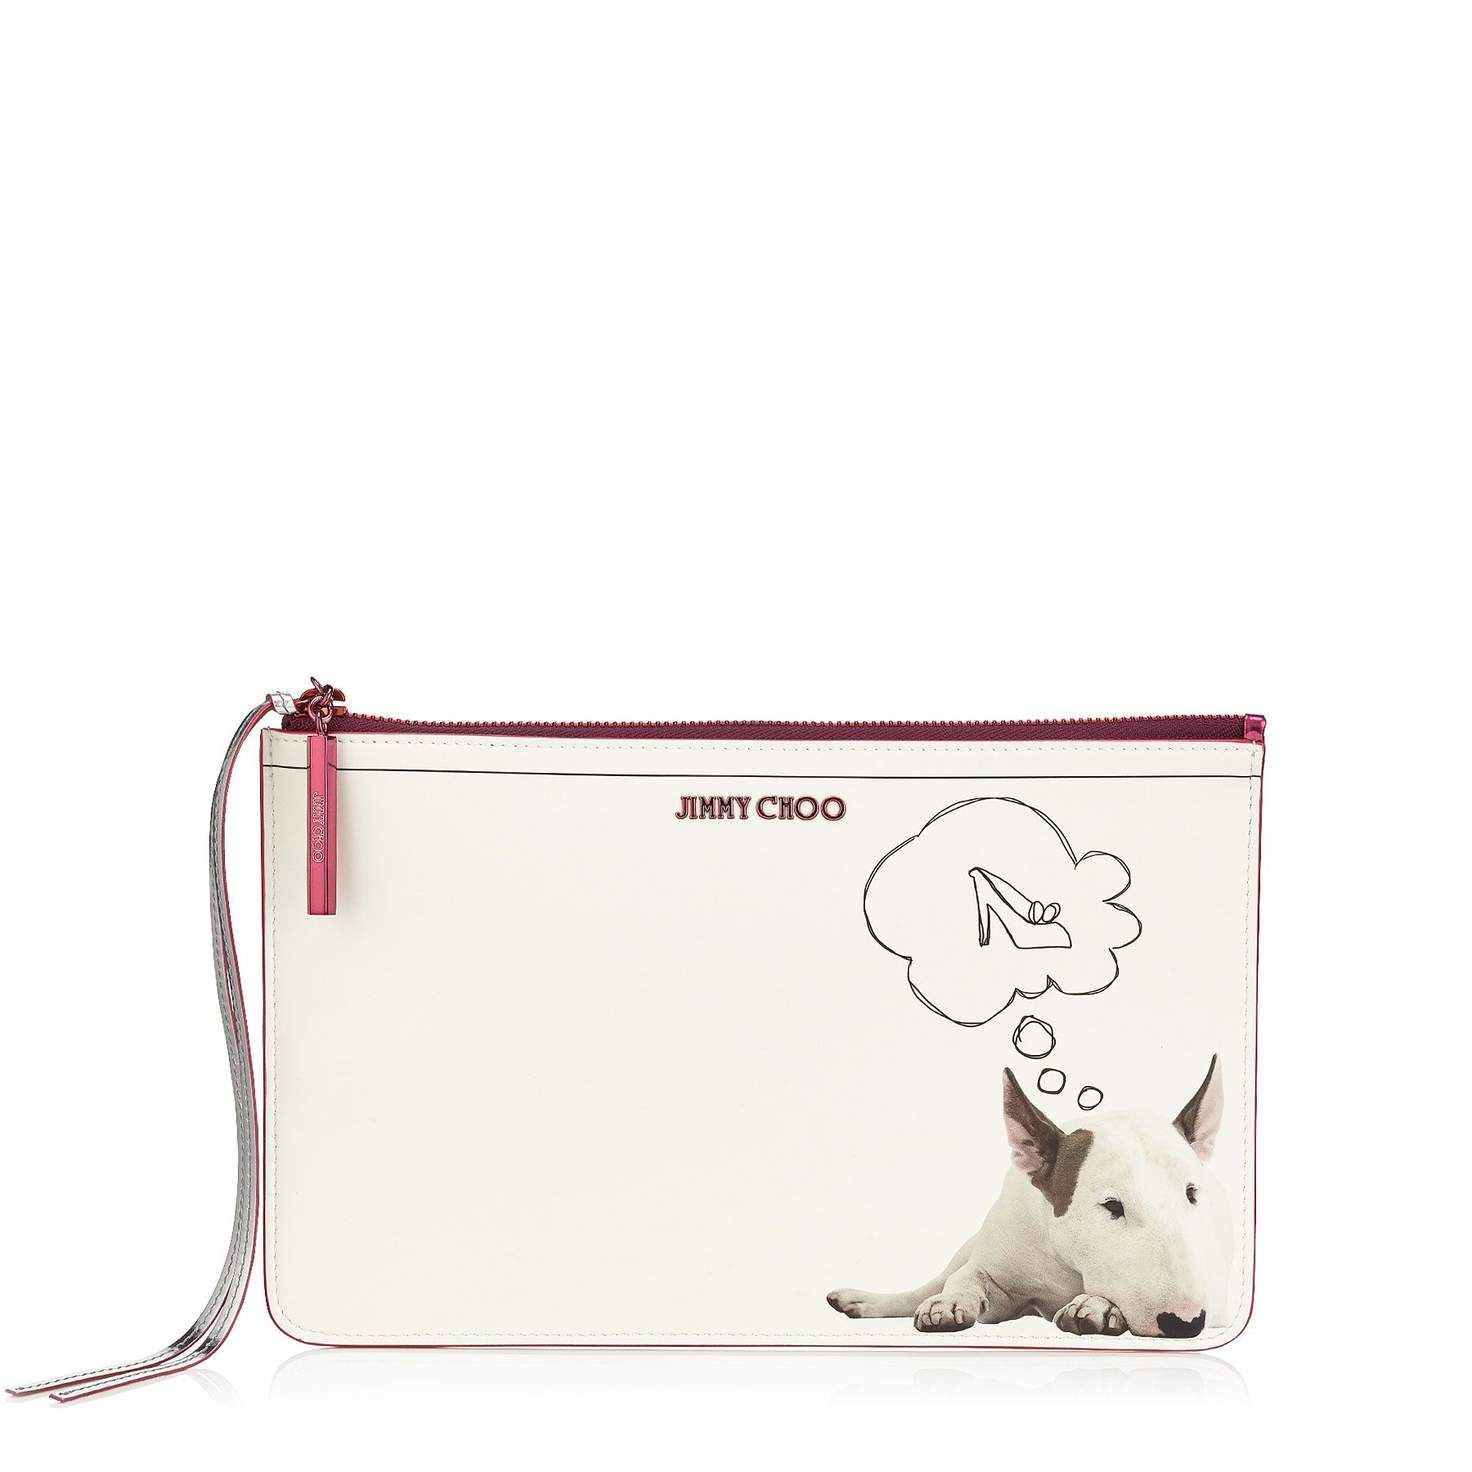 Daydream on White Printed Coated Canvas and Raspberry Mirror Leather Pouch| Nina L | Pre Fall 15 Capsule Collection | JIMMY CHOO View All Gifts for her